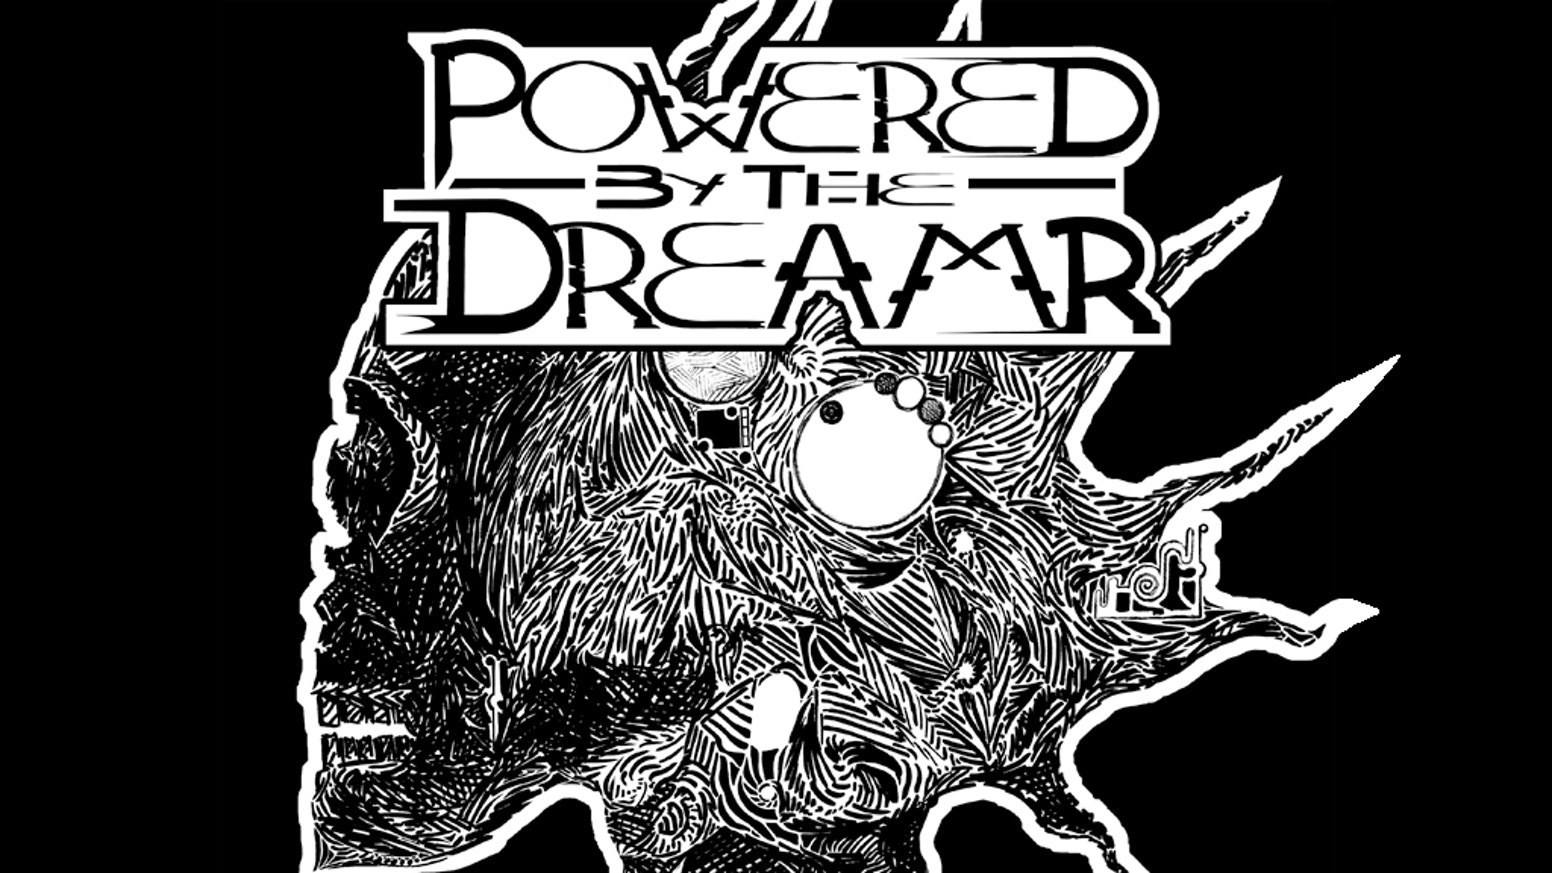 Dreamrs, we are such stuff as dreams are *Powered* on, and our little life is rounded *by the Apocalypse*. Complete PbtA RPG in a zine.